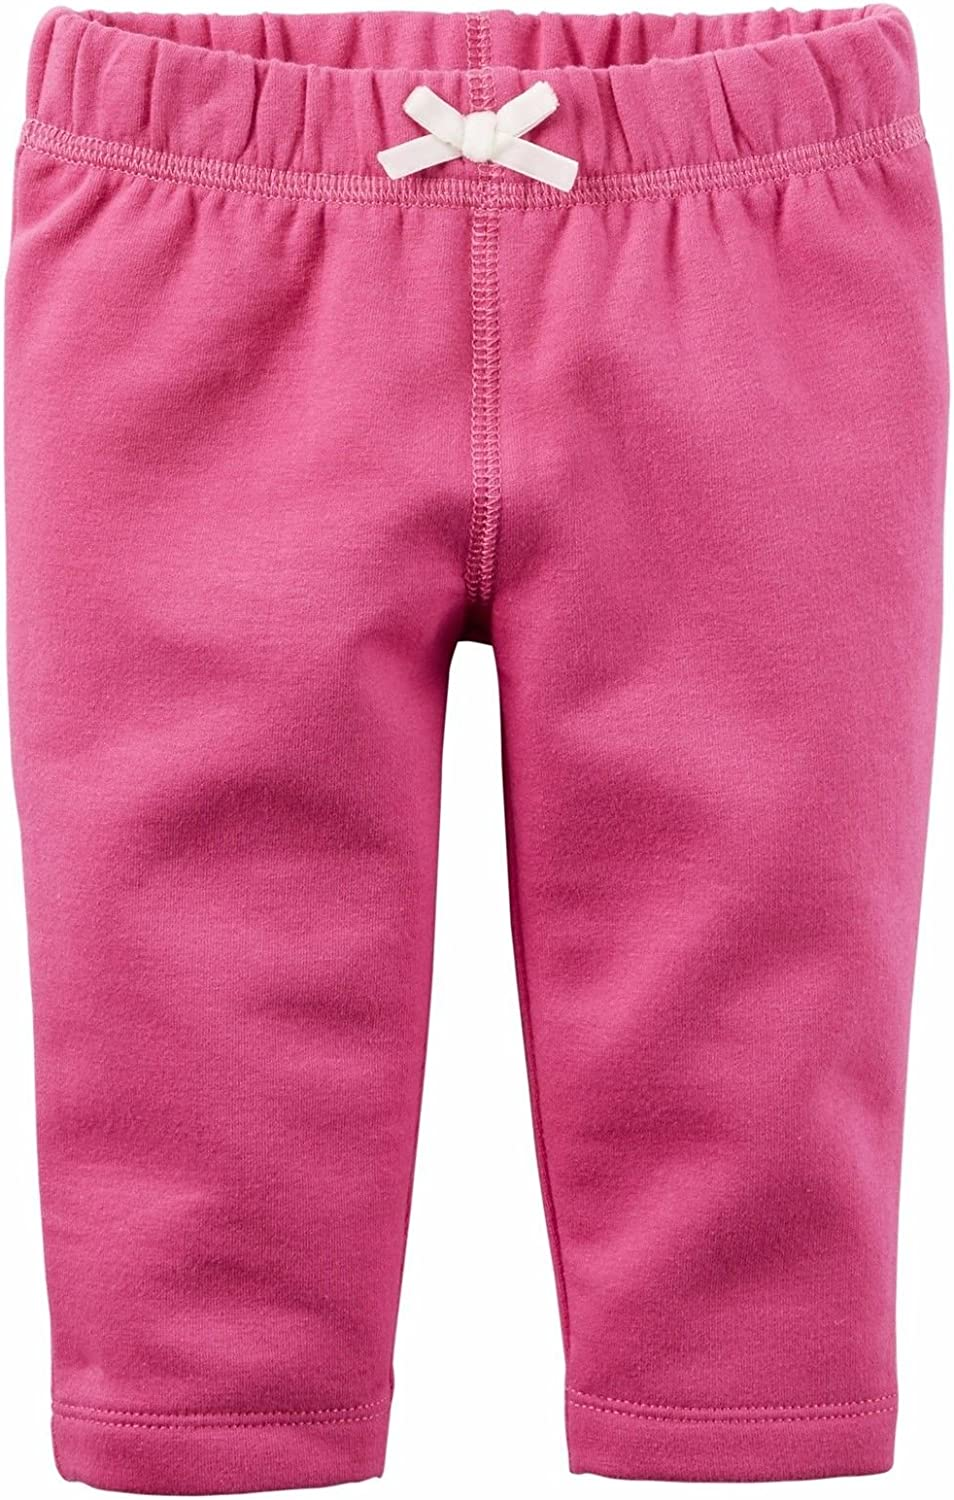 Carters Girls Pink French Terry Pull On Pants 3 Months